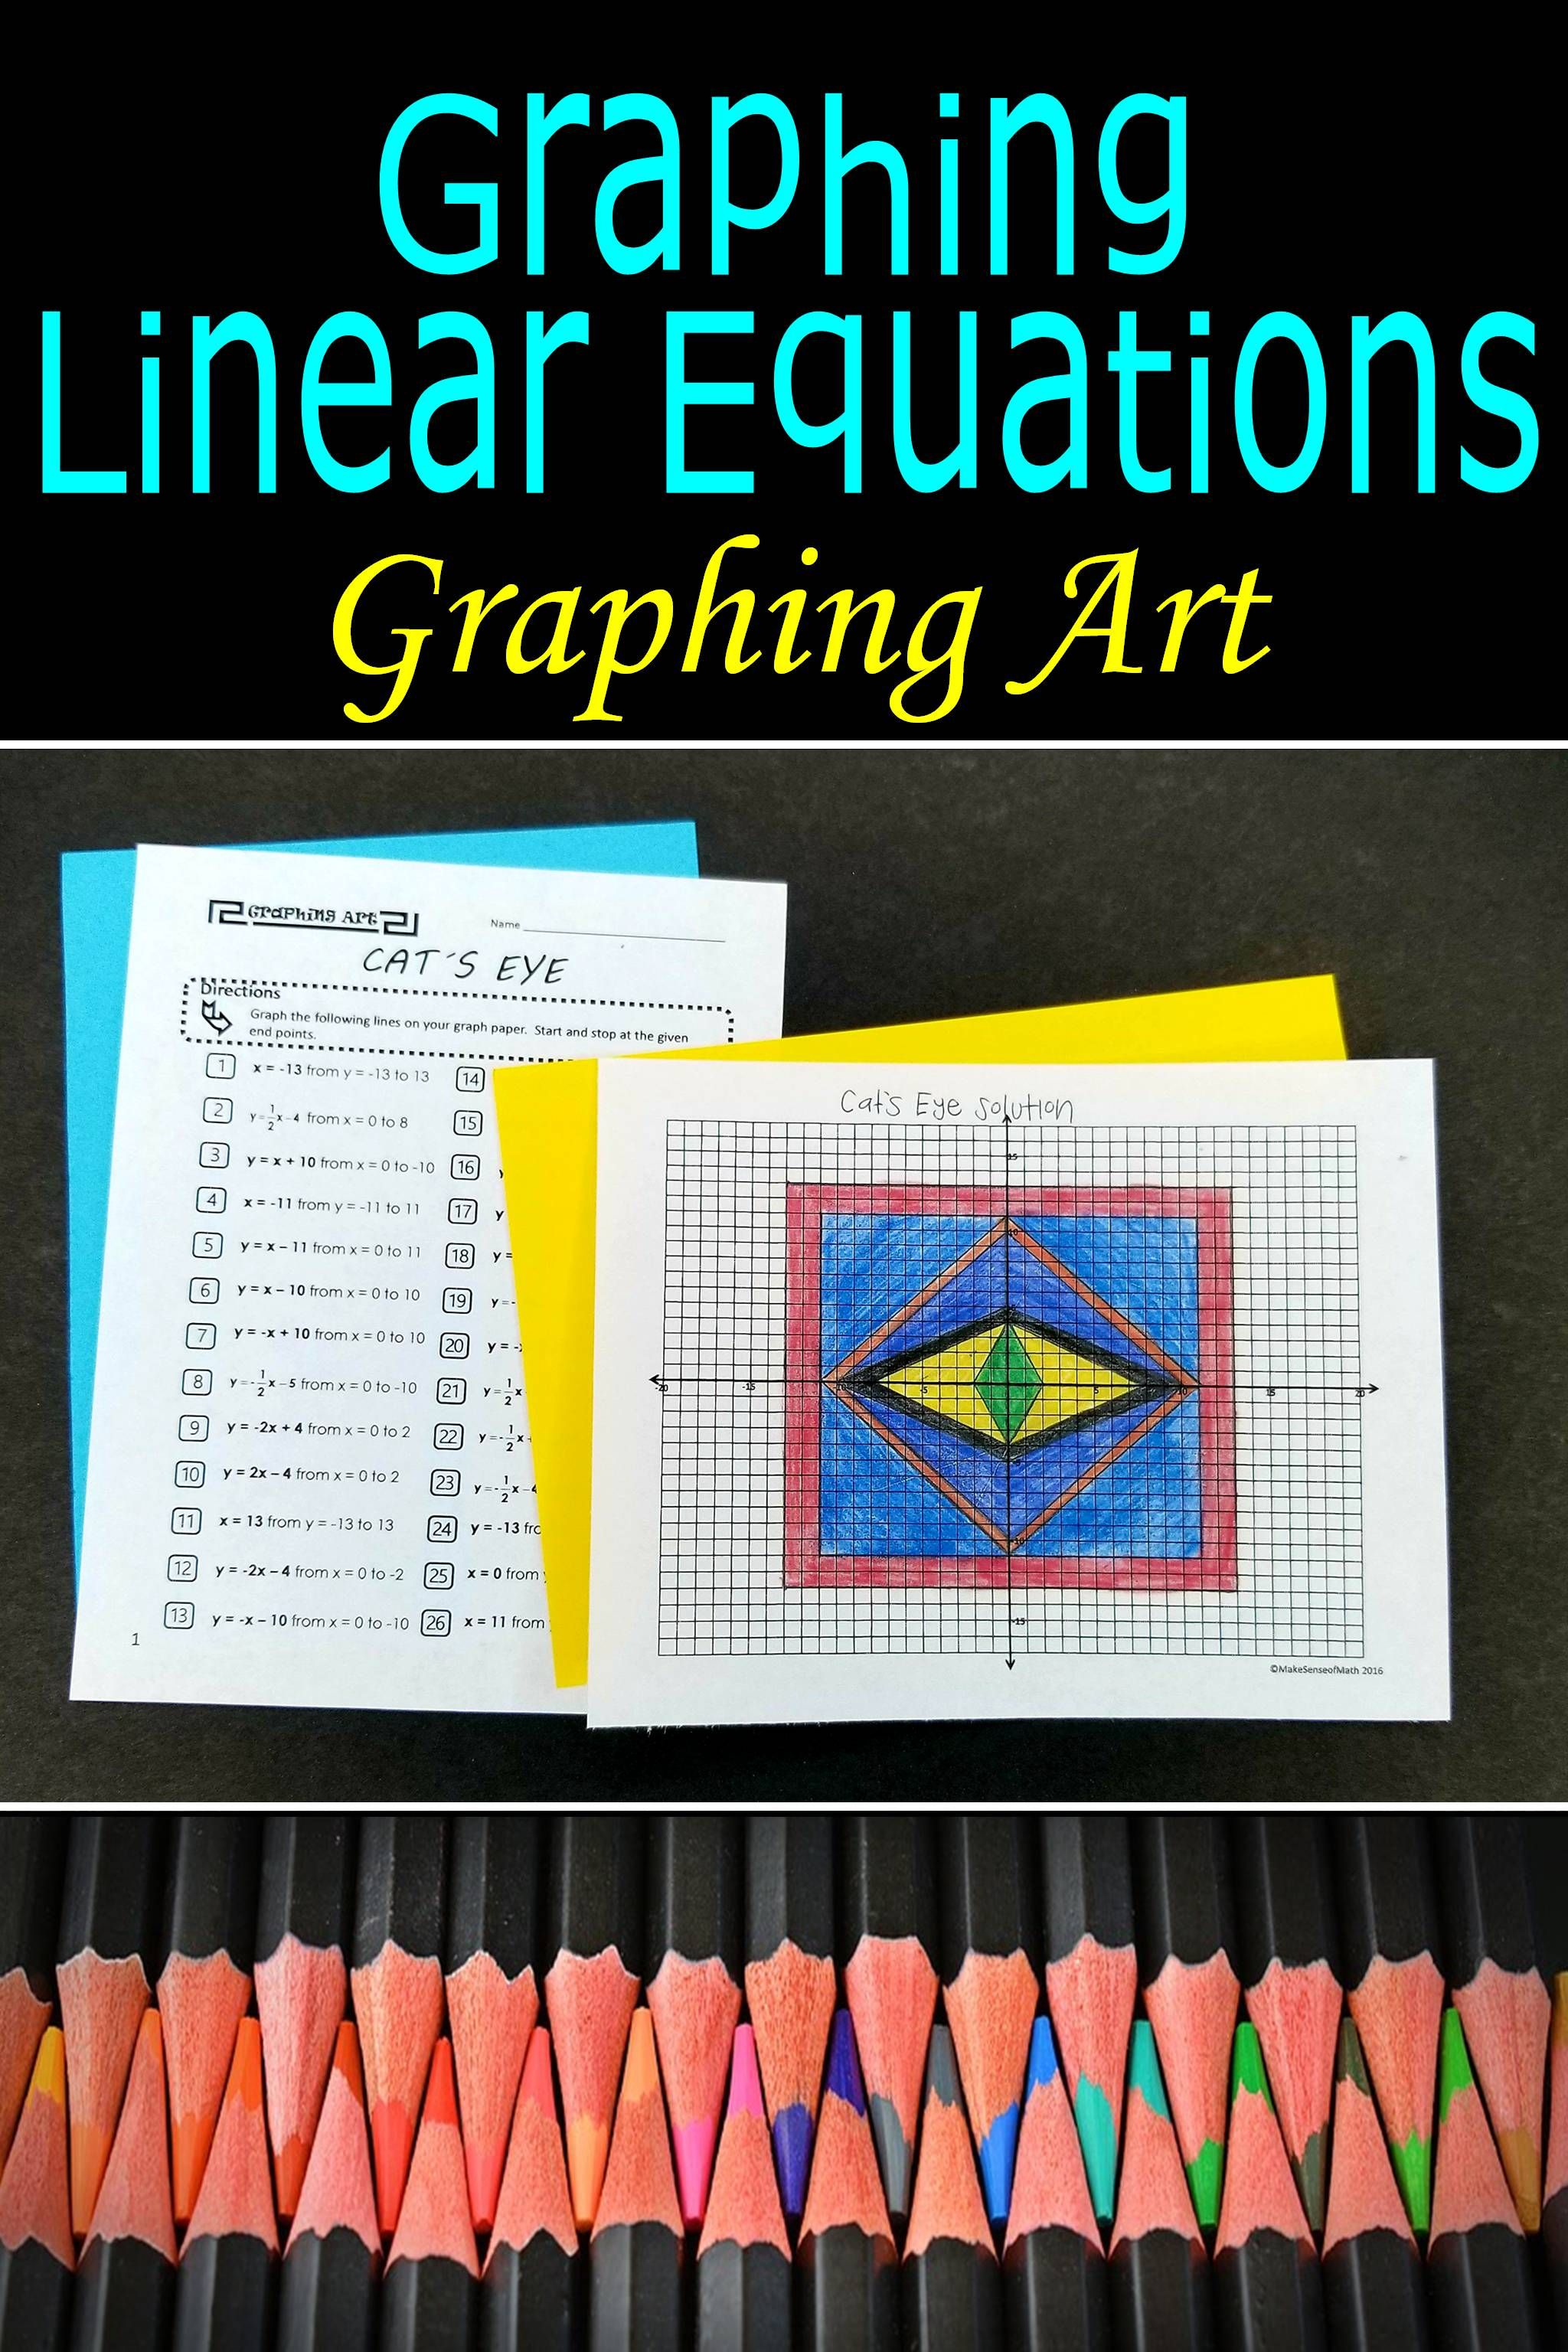 Graphing Linear Equations Activity Graphing Art Cat S Eye